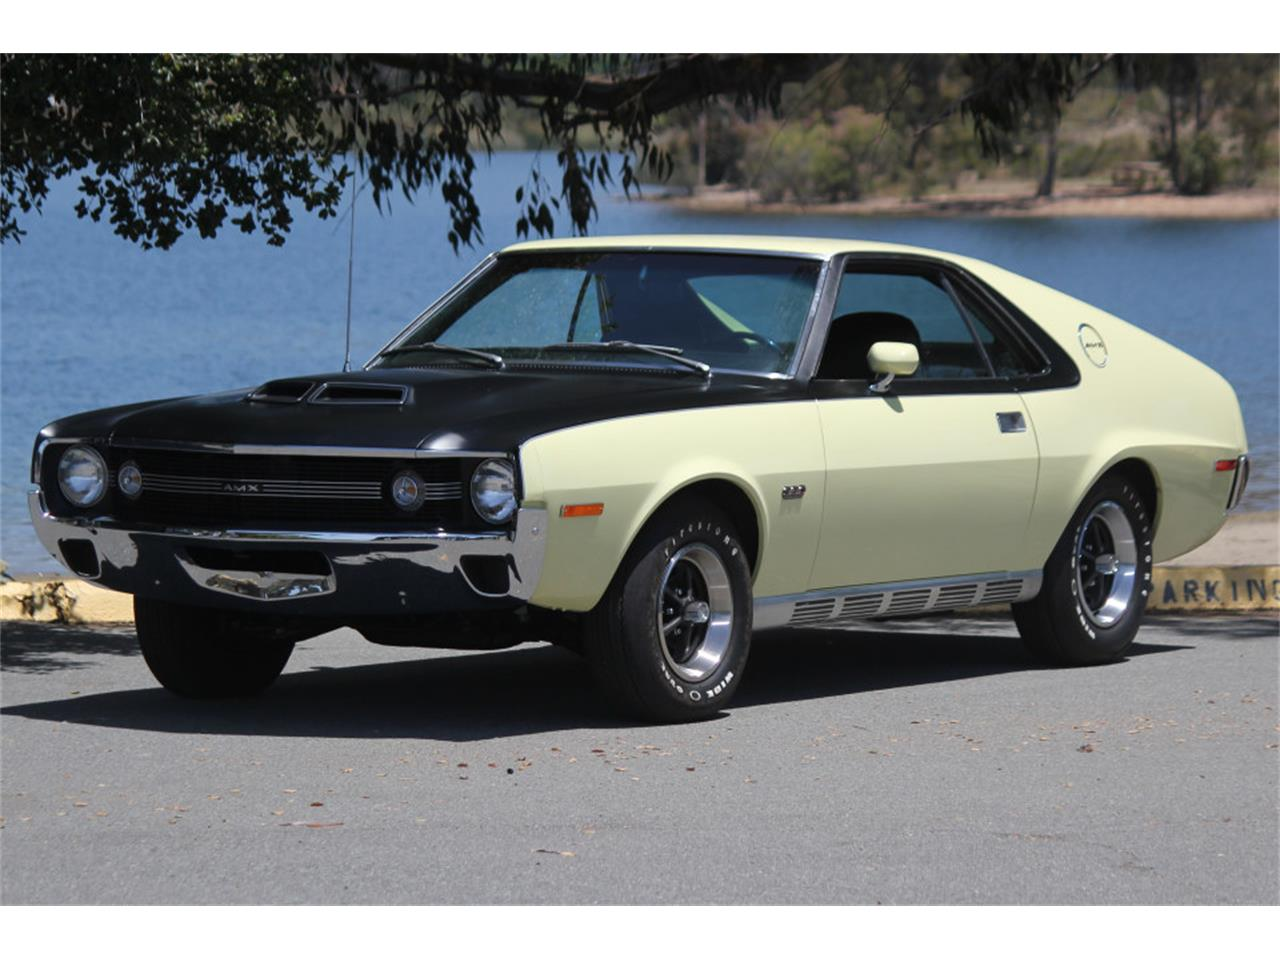 Large Picture of '70 AMX located in San Diego  California - $59,500.00 - QCFB